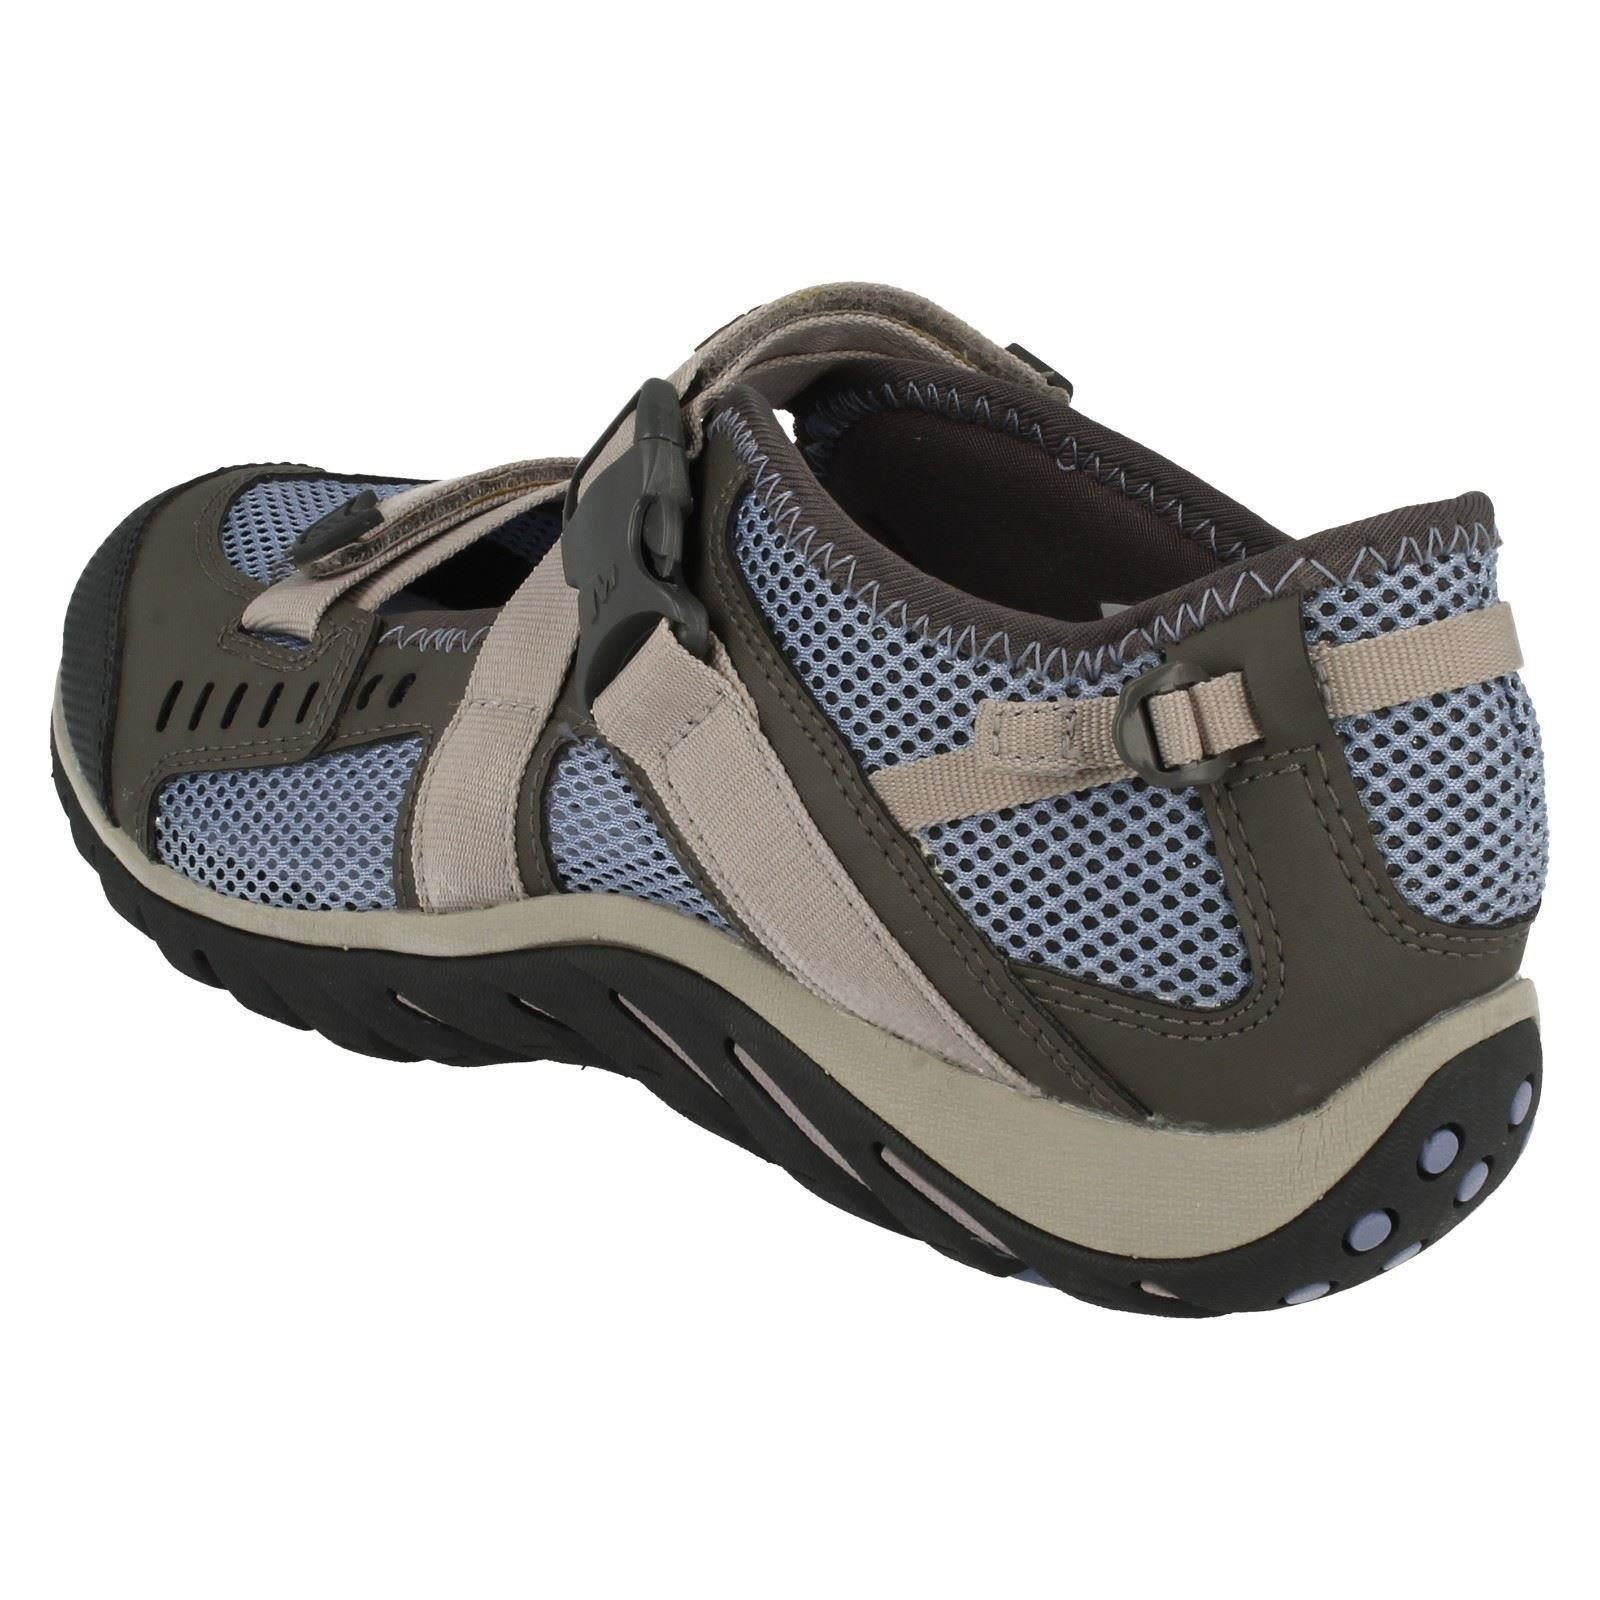 Women S Closed Toe Water Shoes